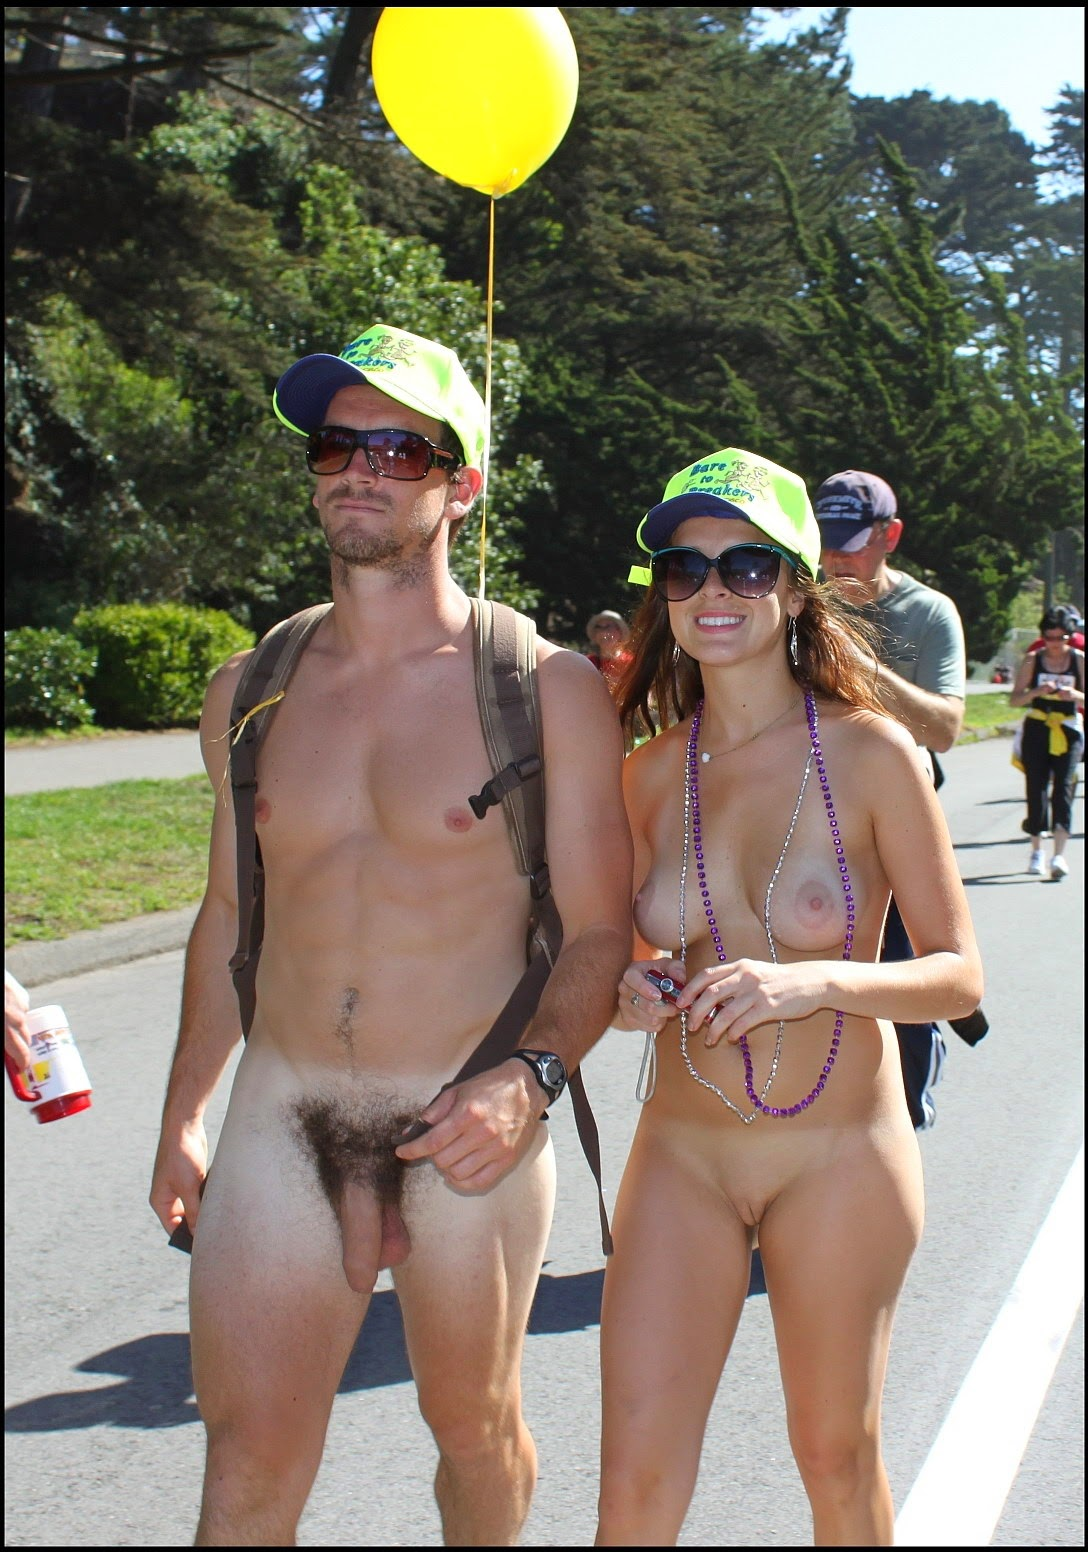 Nudism - Photo - HQ : Naked parade - girls and man